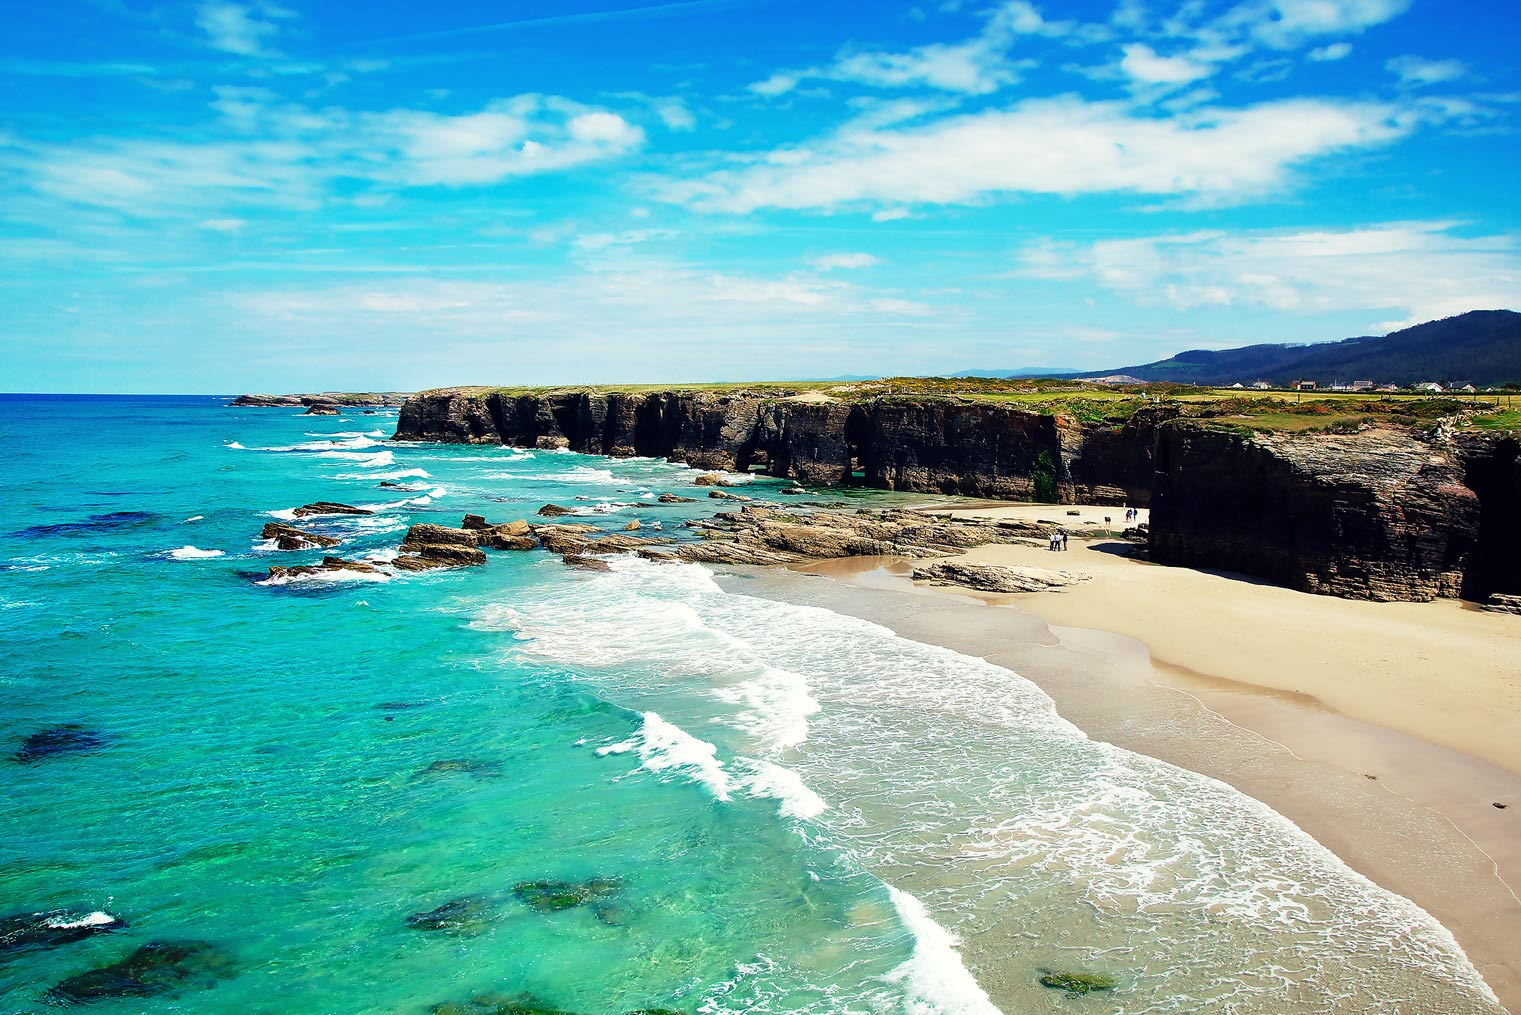 mejores playas espana las Catedrales - The best beaches in Spain to visit during the summer